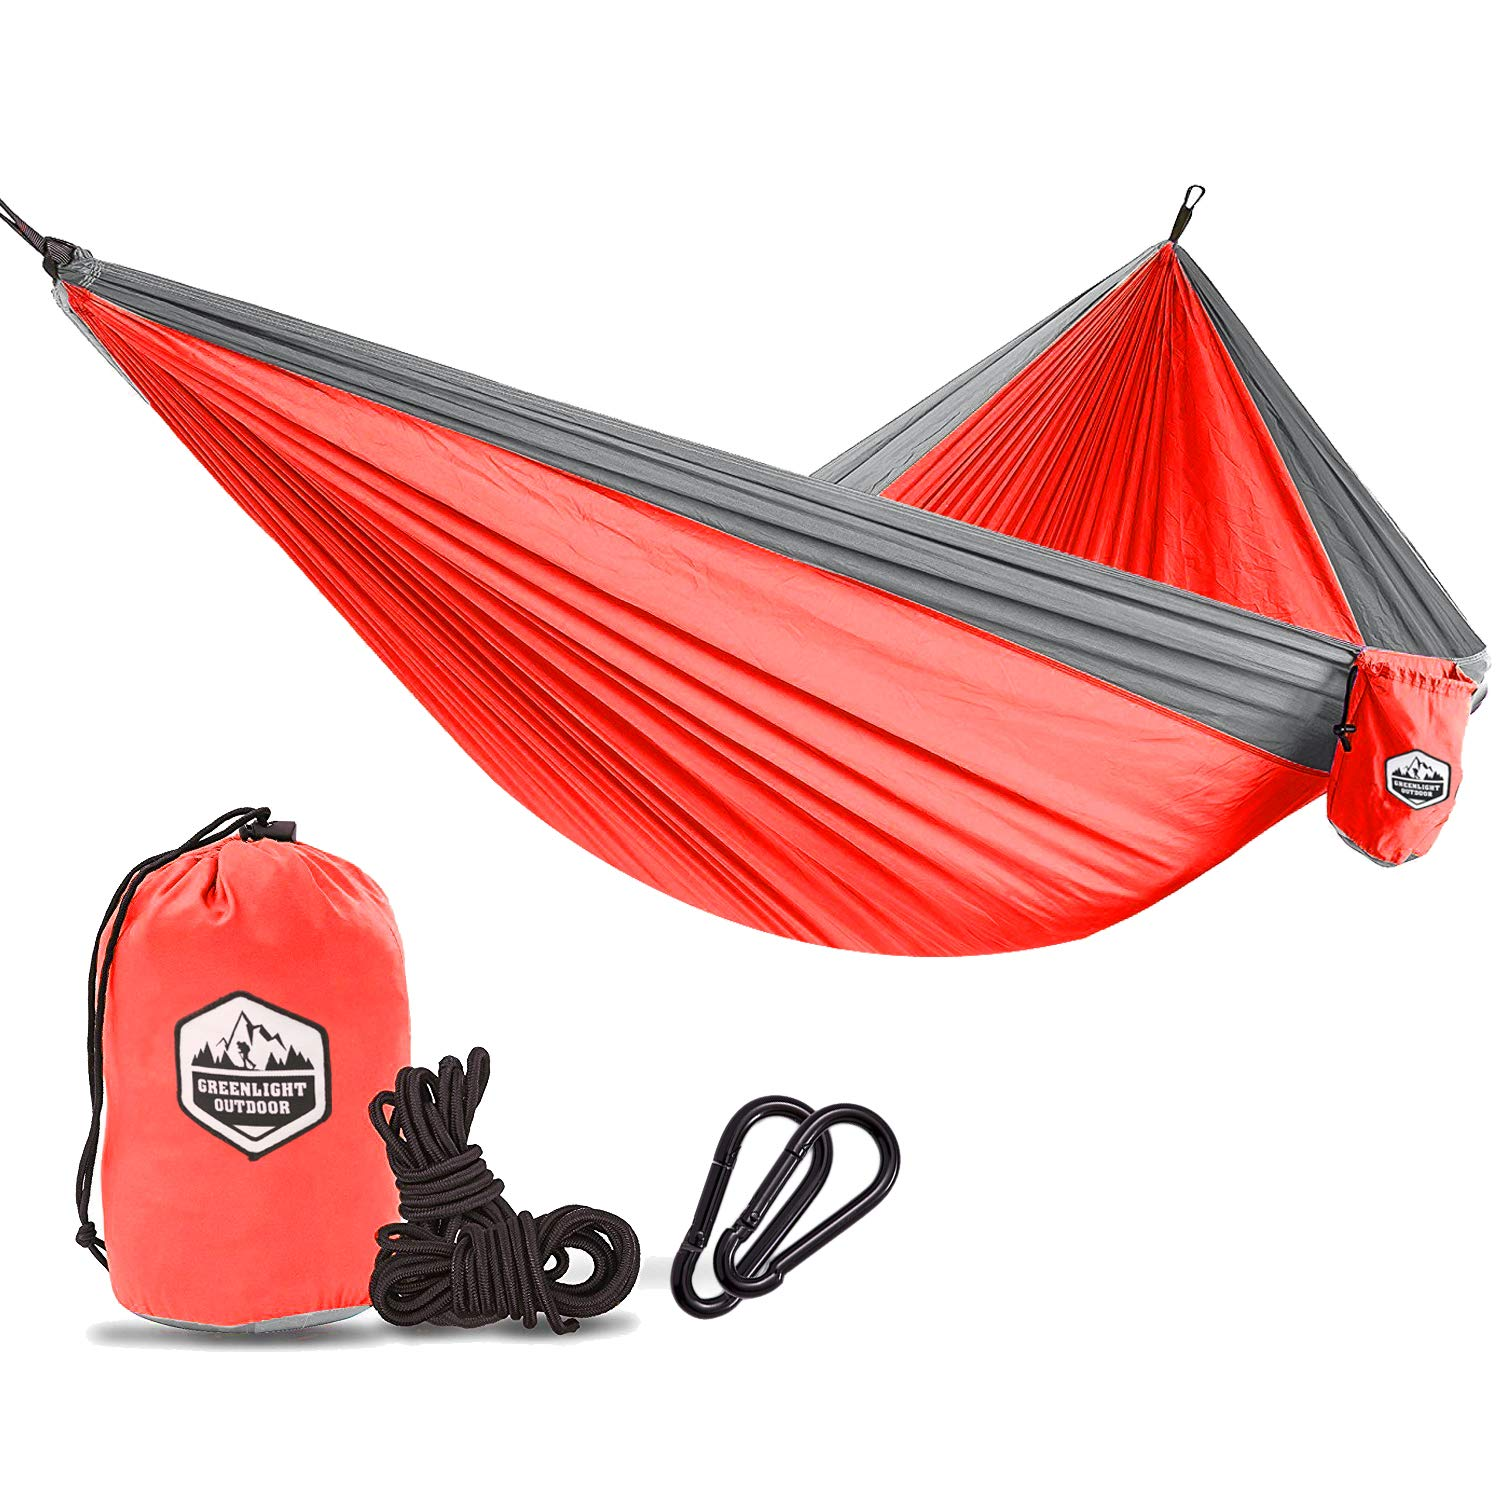 Greenlight Outdoor Camping Single Hammock - Lightweight Parachute Portable Hammocks for Hiking, Travel, Backpacking, Beach, Yard Gear Includes Nylon Straps & Steel Carabiners by Greenlight Outdoor